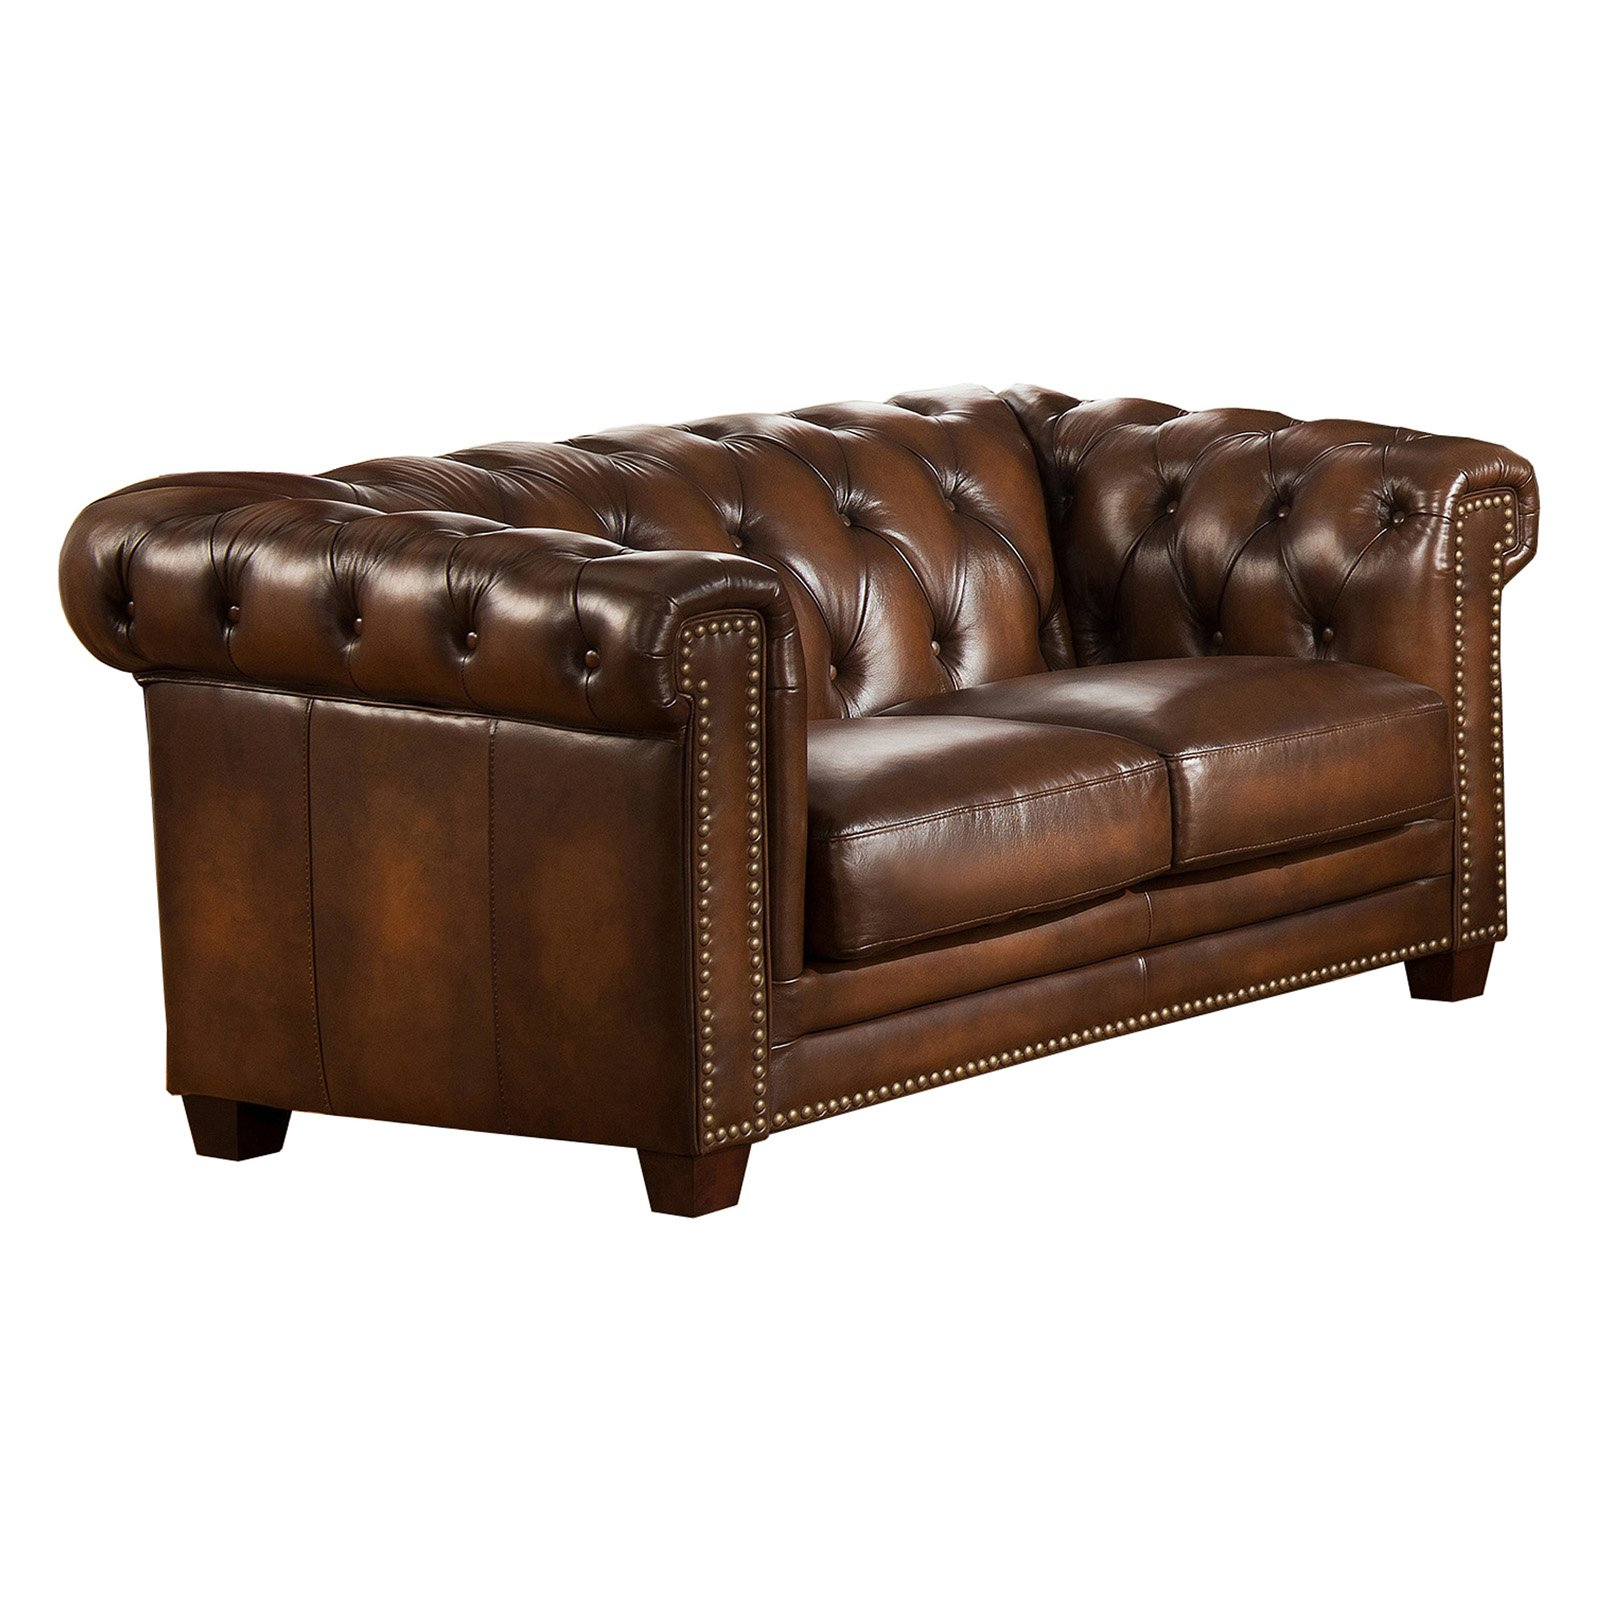 Amax Leather Stanley Park II Top Grain Leather Loveseat